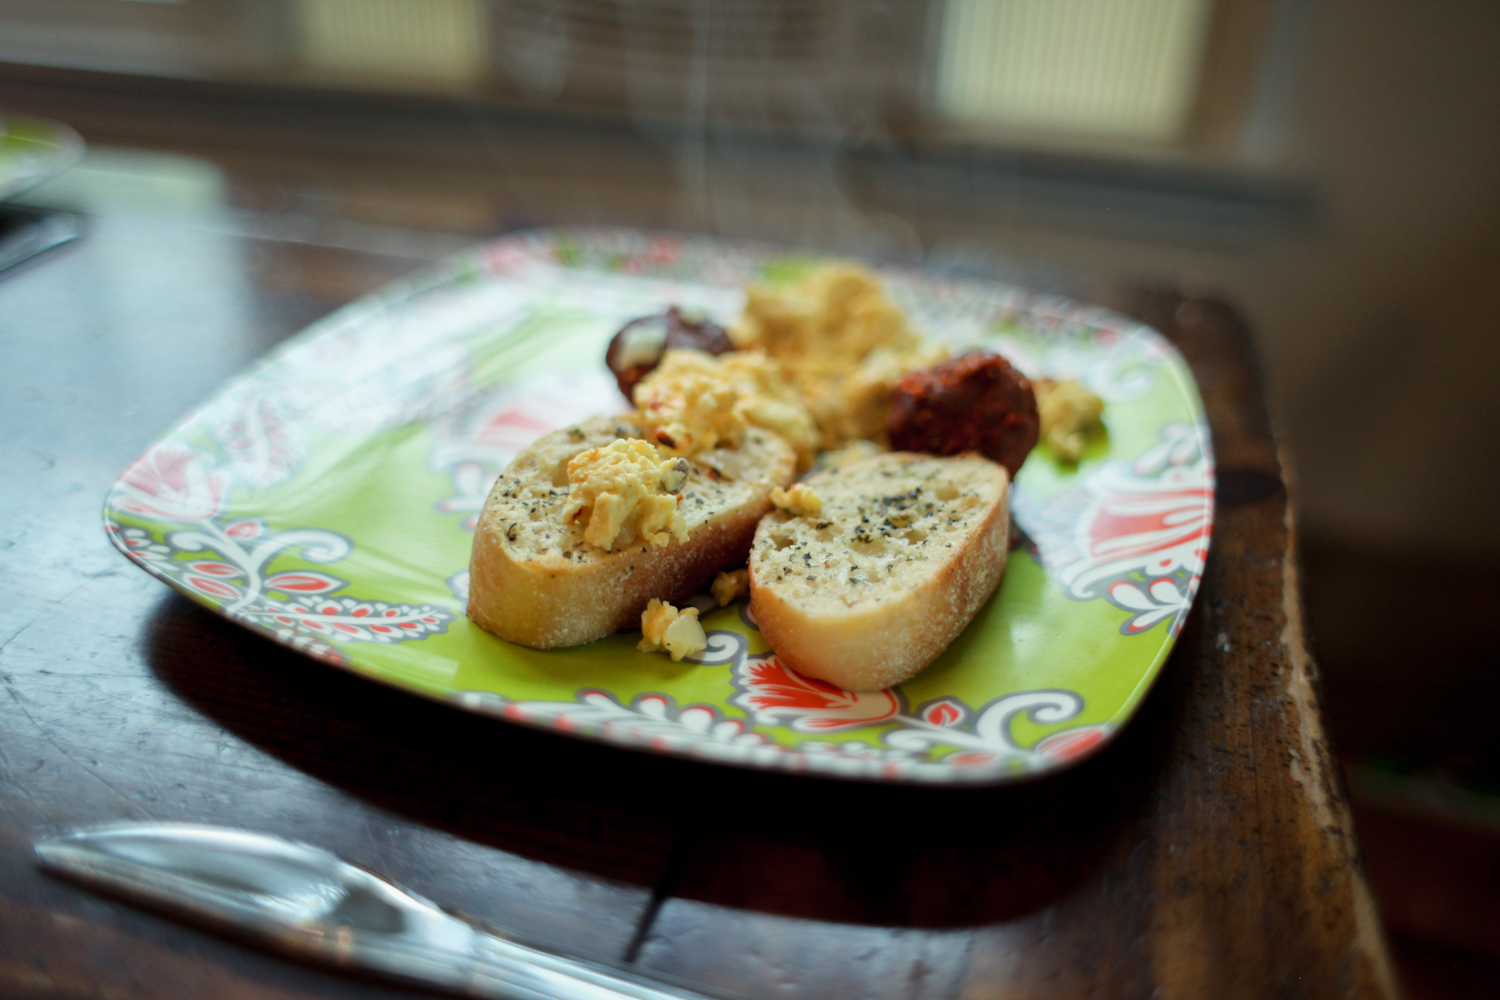 The eggs were prepared by Jeffrey, 17, with fresh garlic, onions, cheese, and cream. These meatballs were provided by the neighbors. Mom made the garlic bread. Jeffrey is quite gifted in the culinary arts. He and his brother Joseph run a business called   The Cookie Boys .